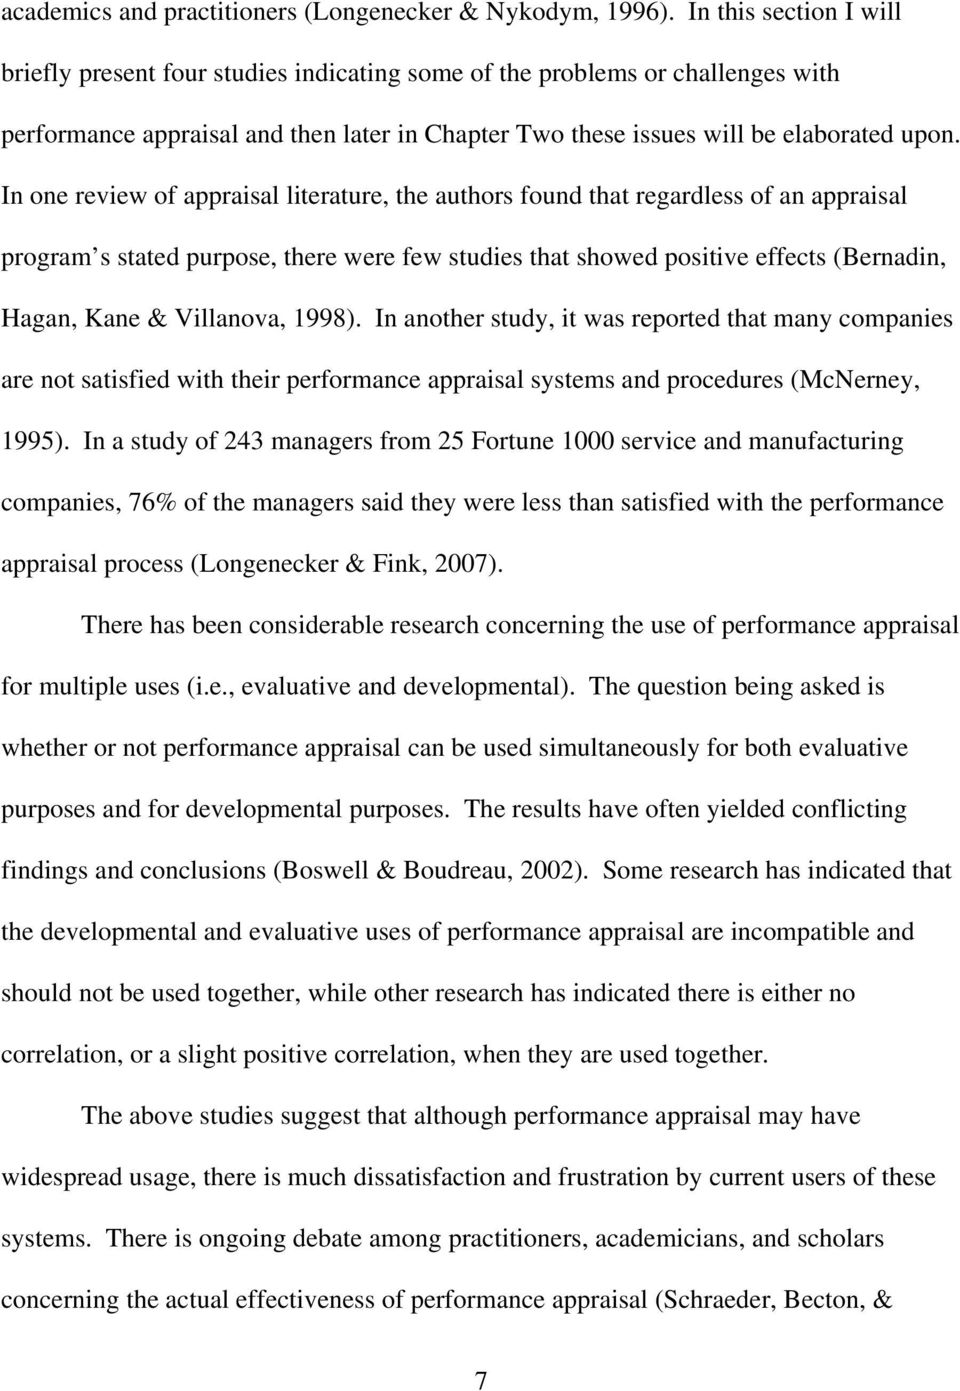 Review of literature of performance appraisal   reportz    web fc  com